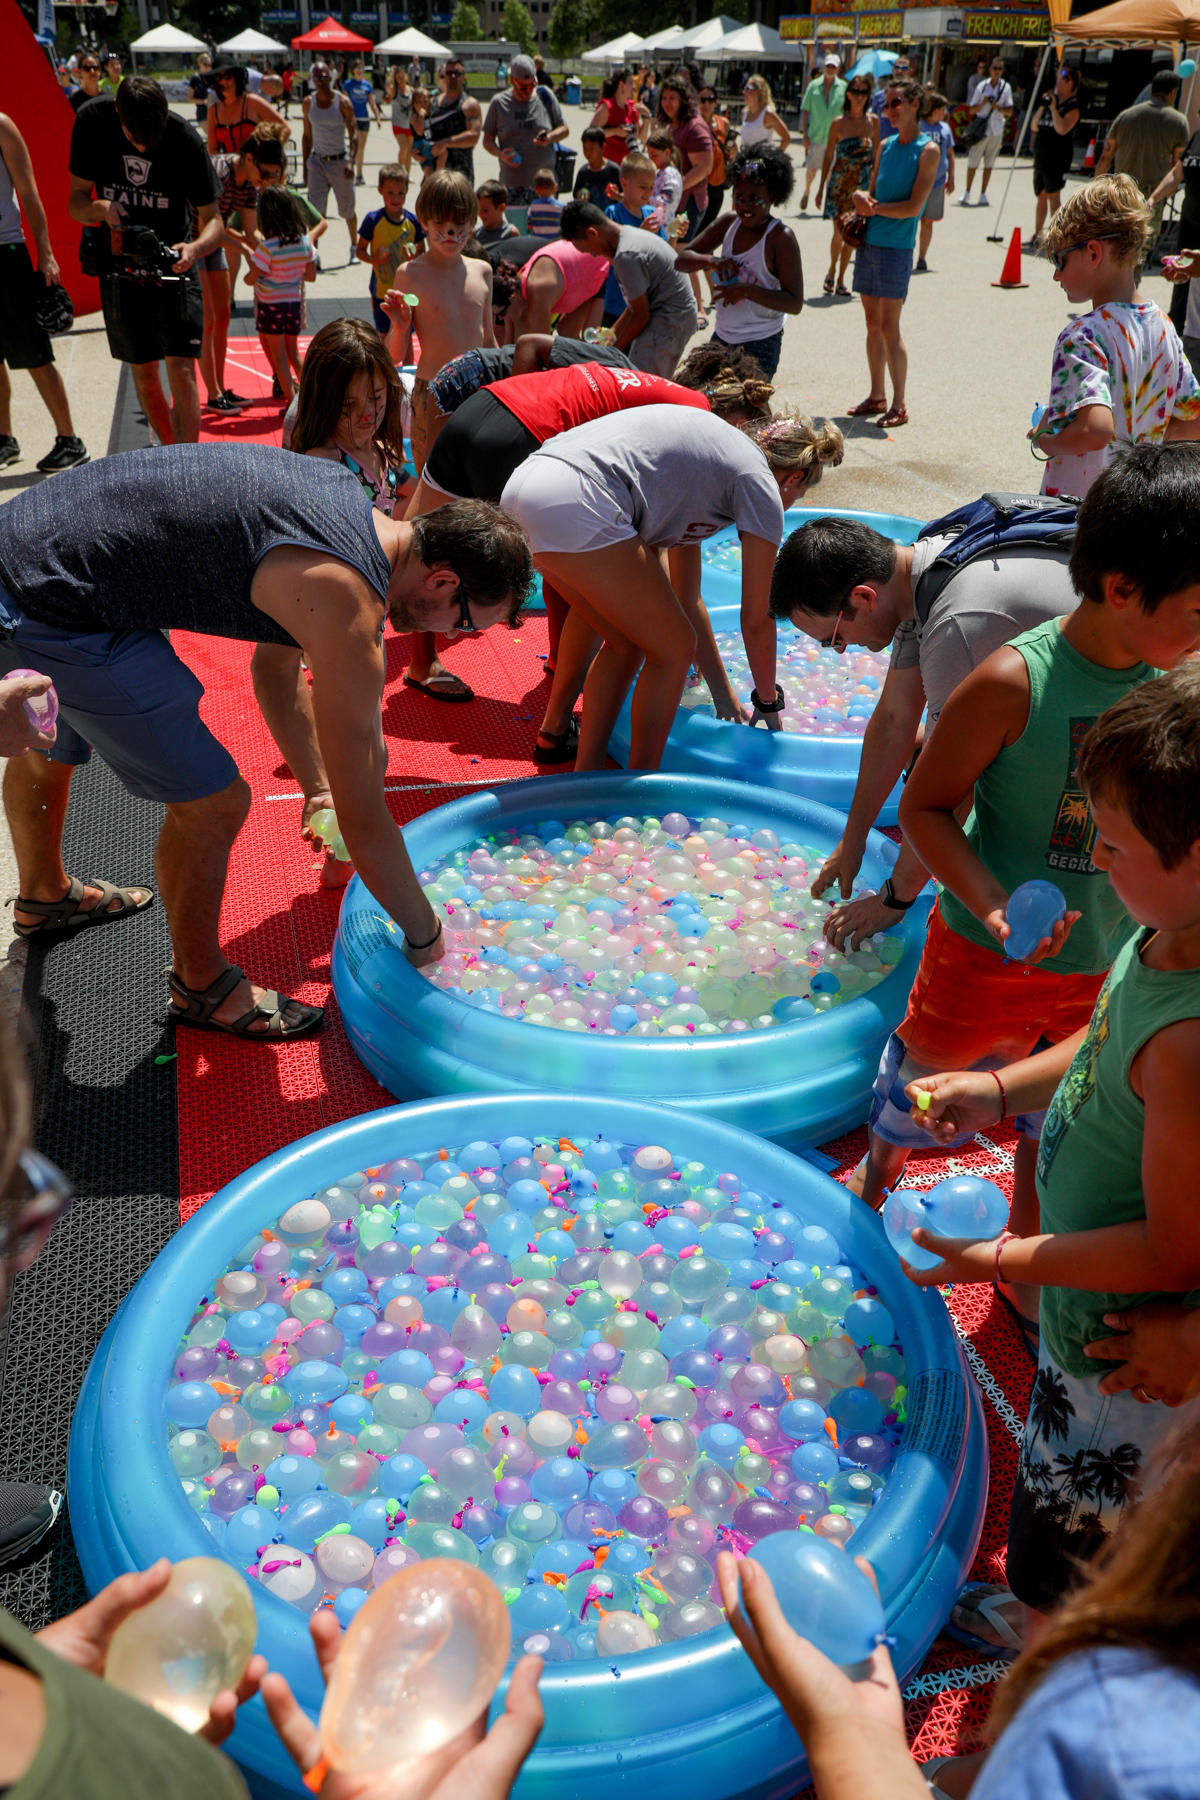 People gathered for the 4th Annual Gains Summer Festival at Calder Plaza in Grand Rapids. It featured many activities, including a giant water balloon fight. (Michael Buck/WOOD TV8)